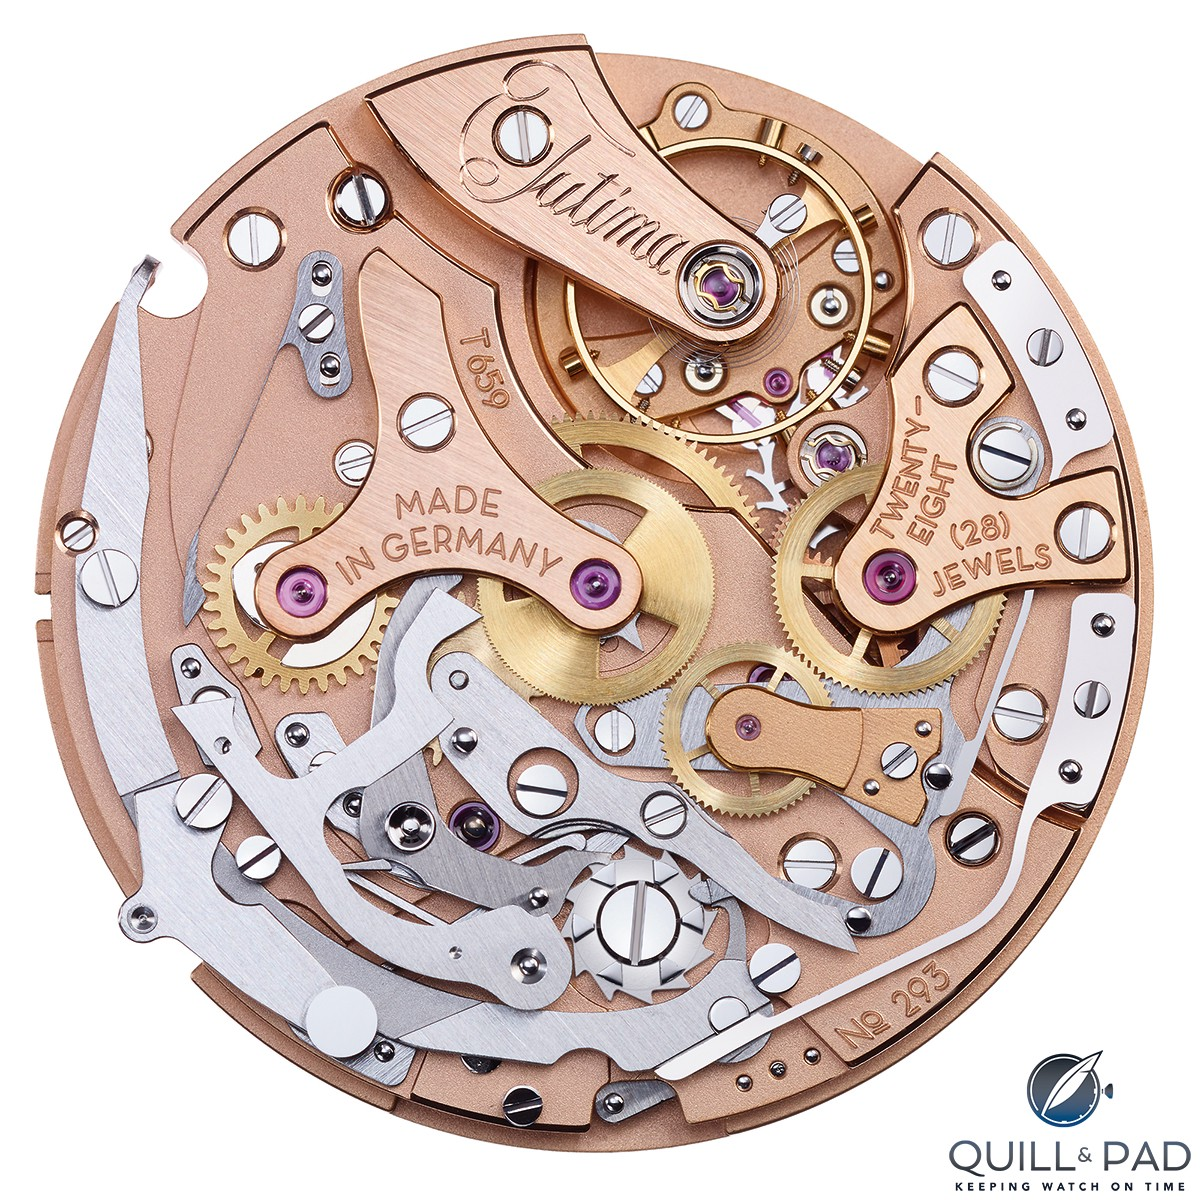 Tutima in house Caliber T659 flyback chronograph movement which powers the Tempostopp